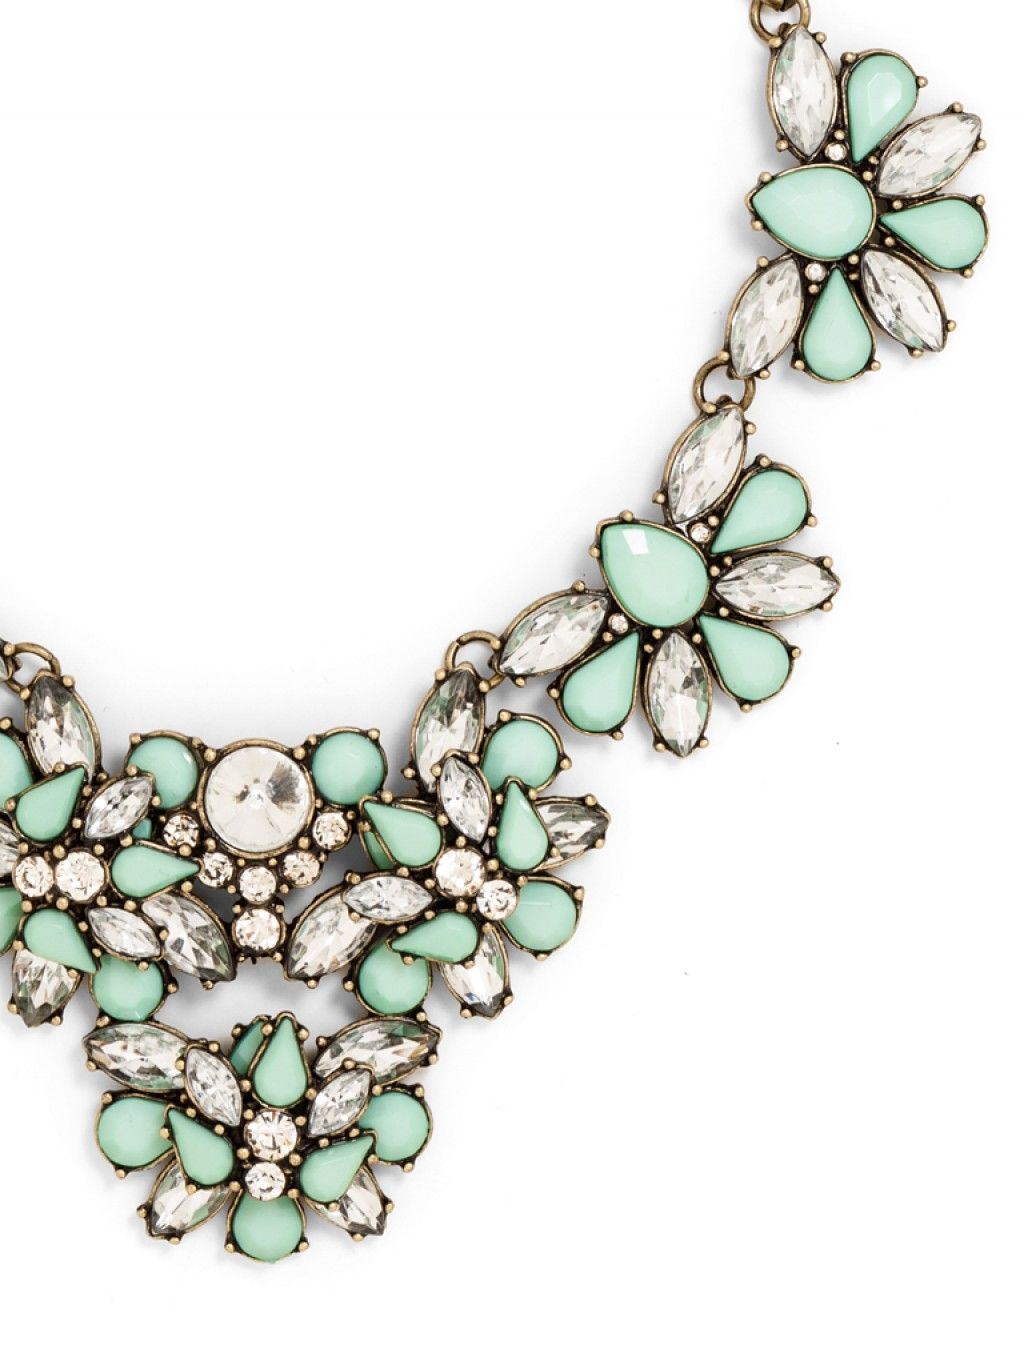 Eve Foliage Bib Necklace in #Mint http://rstyle.me/~1LVUv